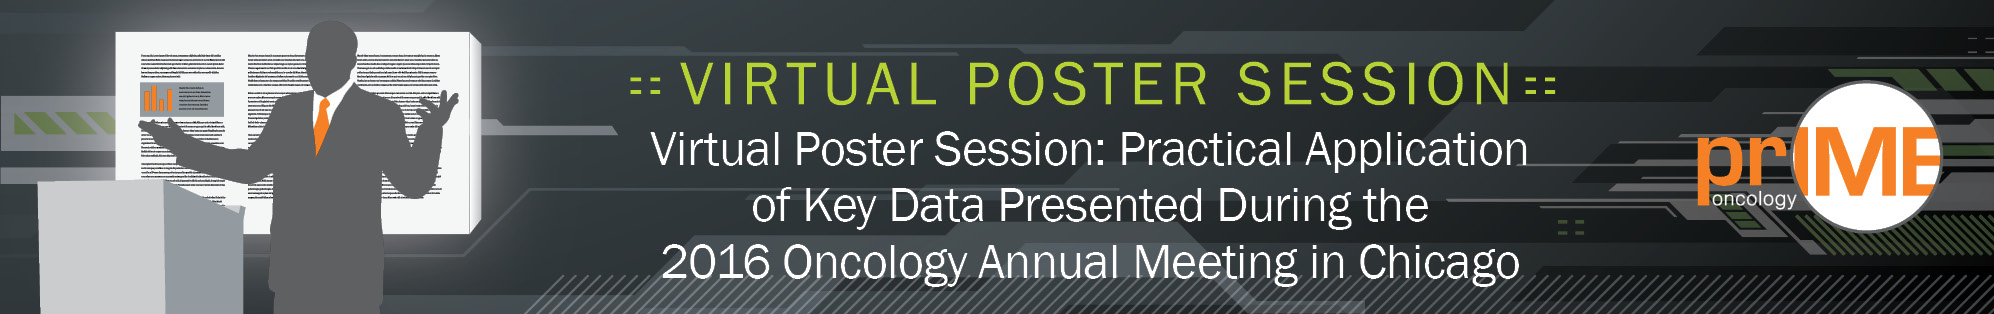 Virtual Poster Session: Practical Application of Key Data Presented During the 2016 Oncology Annual Meeting in Chicago - priME Oncology